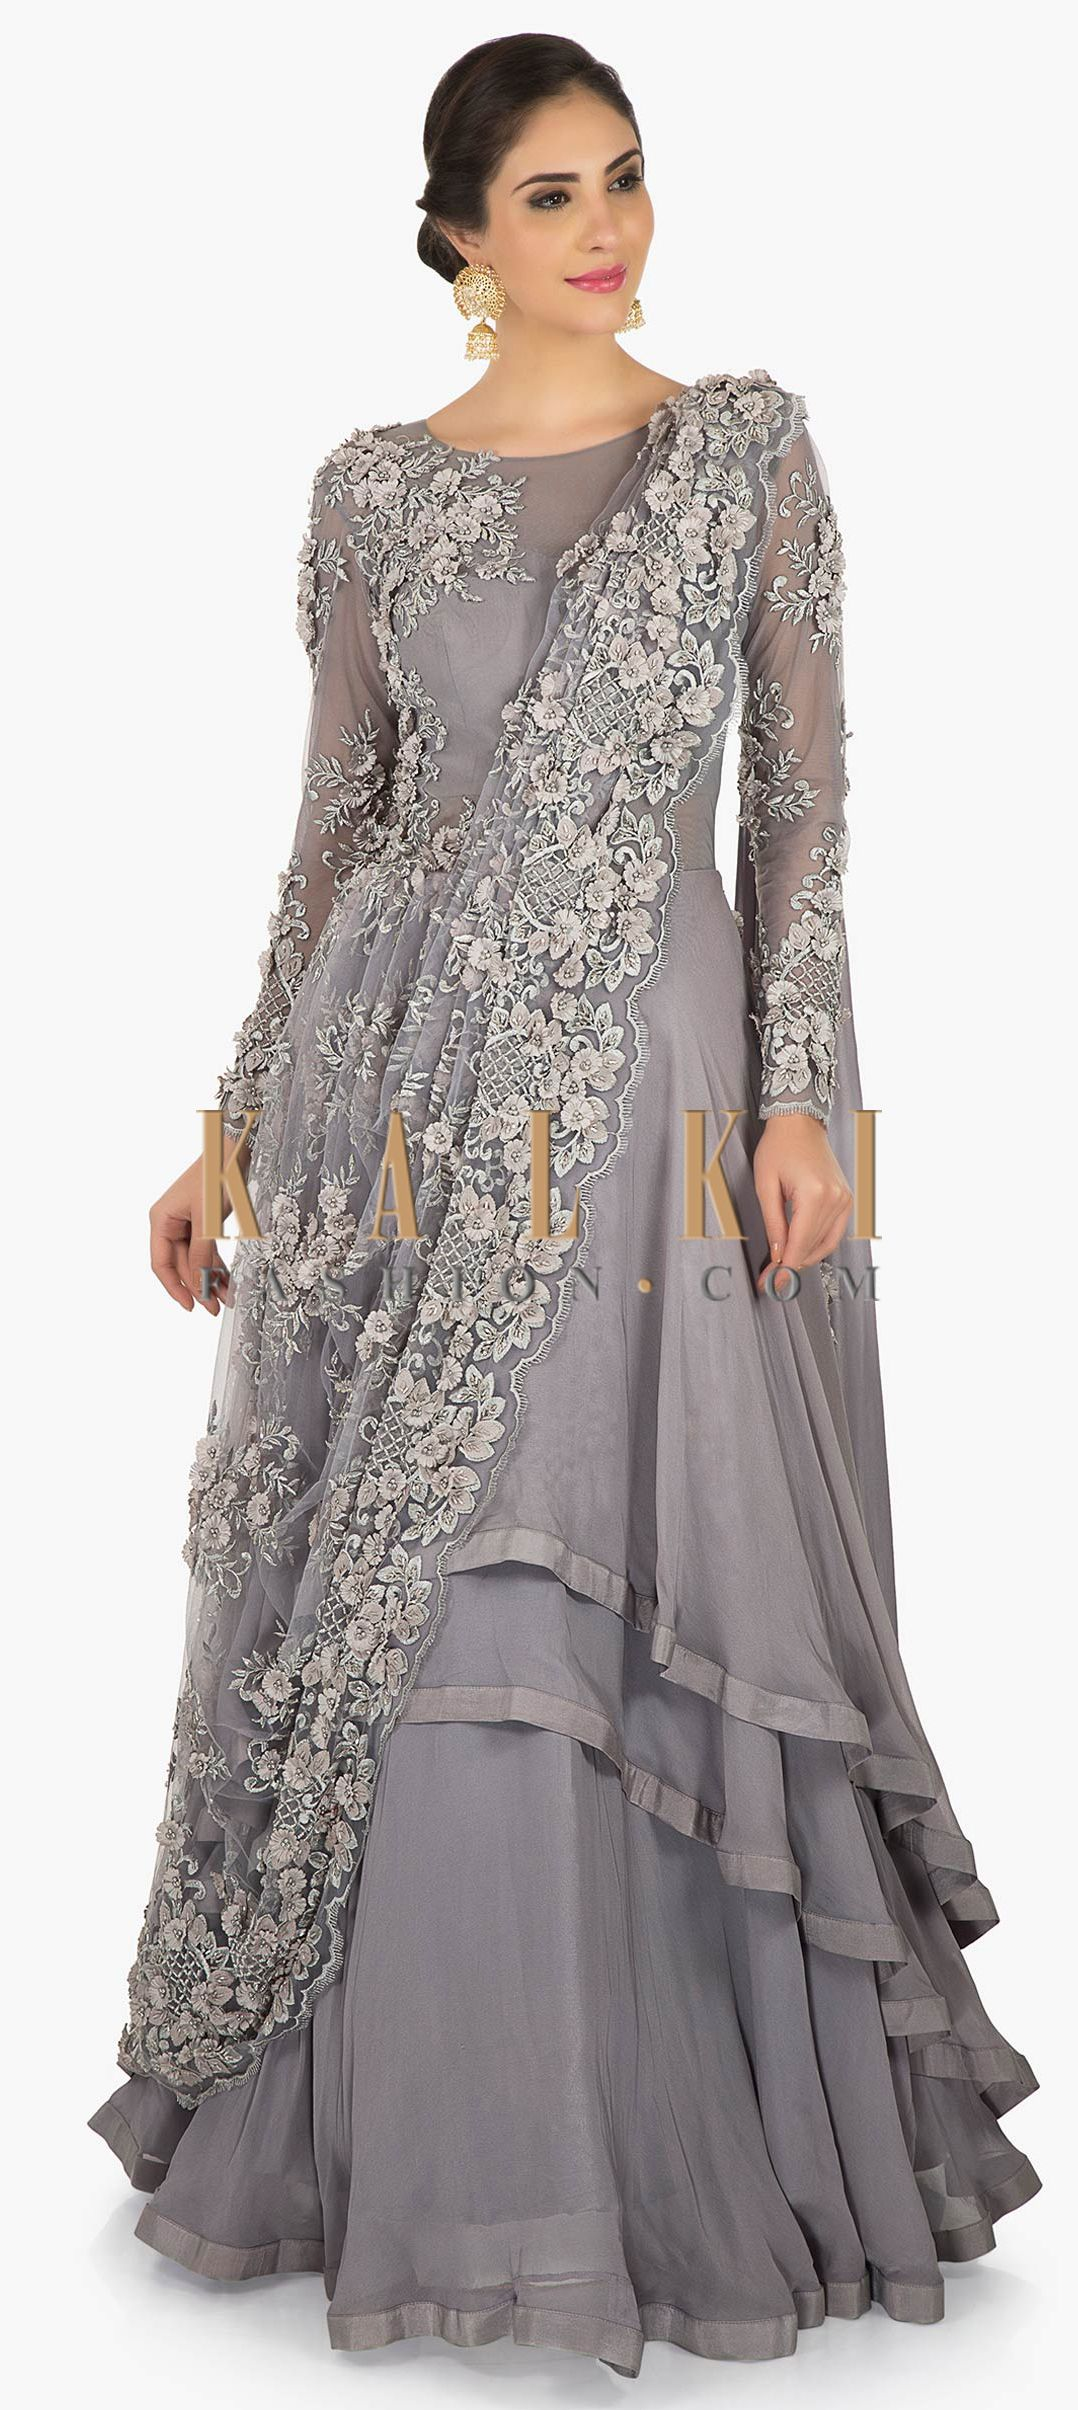 863140e9 Grey gown saree in net crafted in moti and cut dana embroidery work only on  Kalki. Buy Online from the link below. We ship worldwide (Free Shipping  over ...